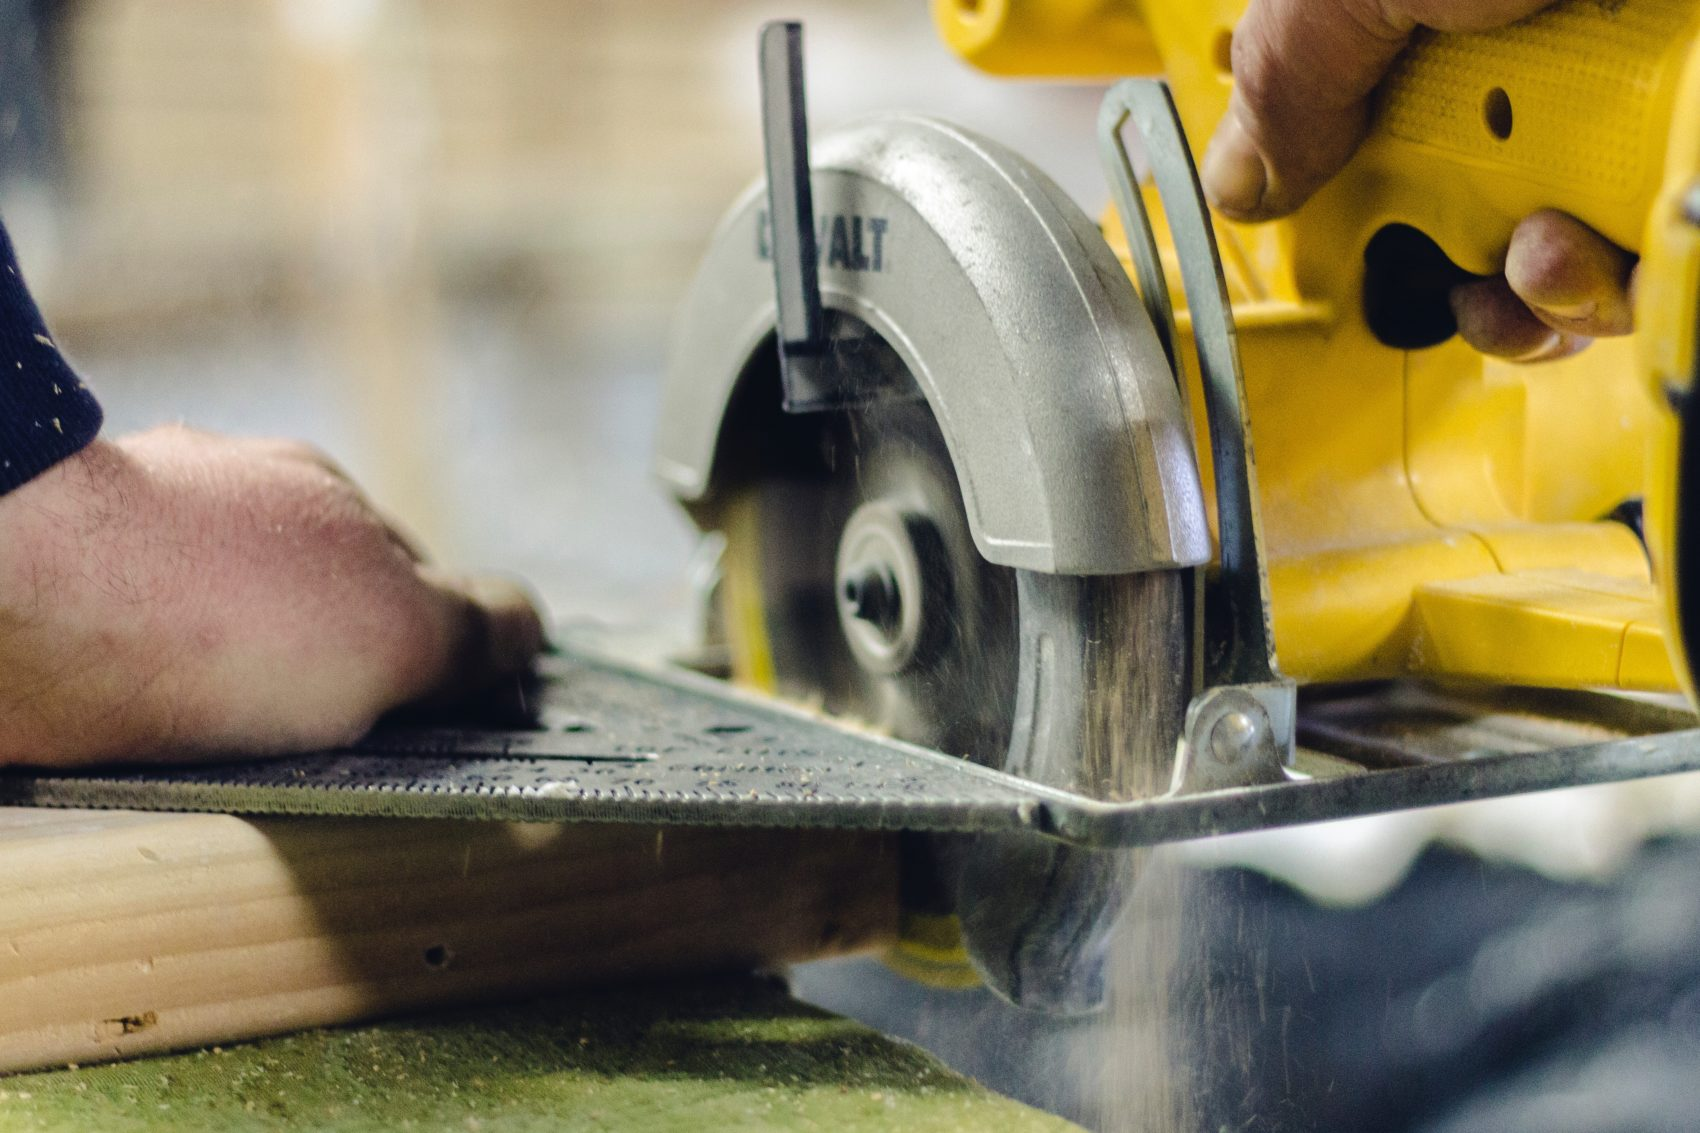 Worker using a yellow saw to cut.